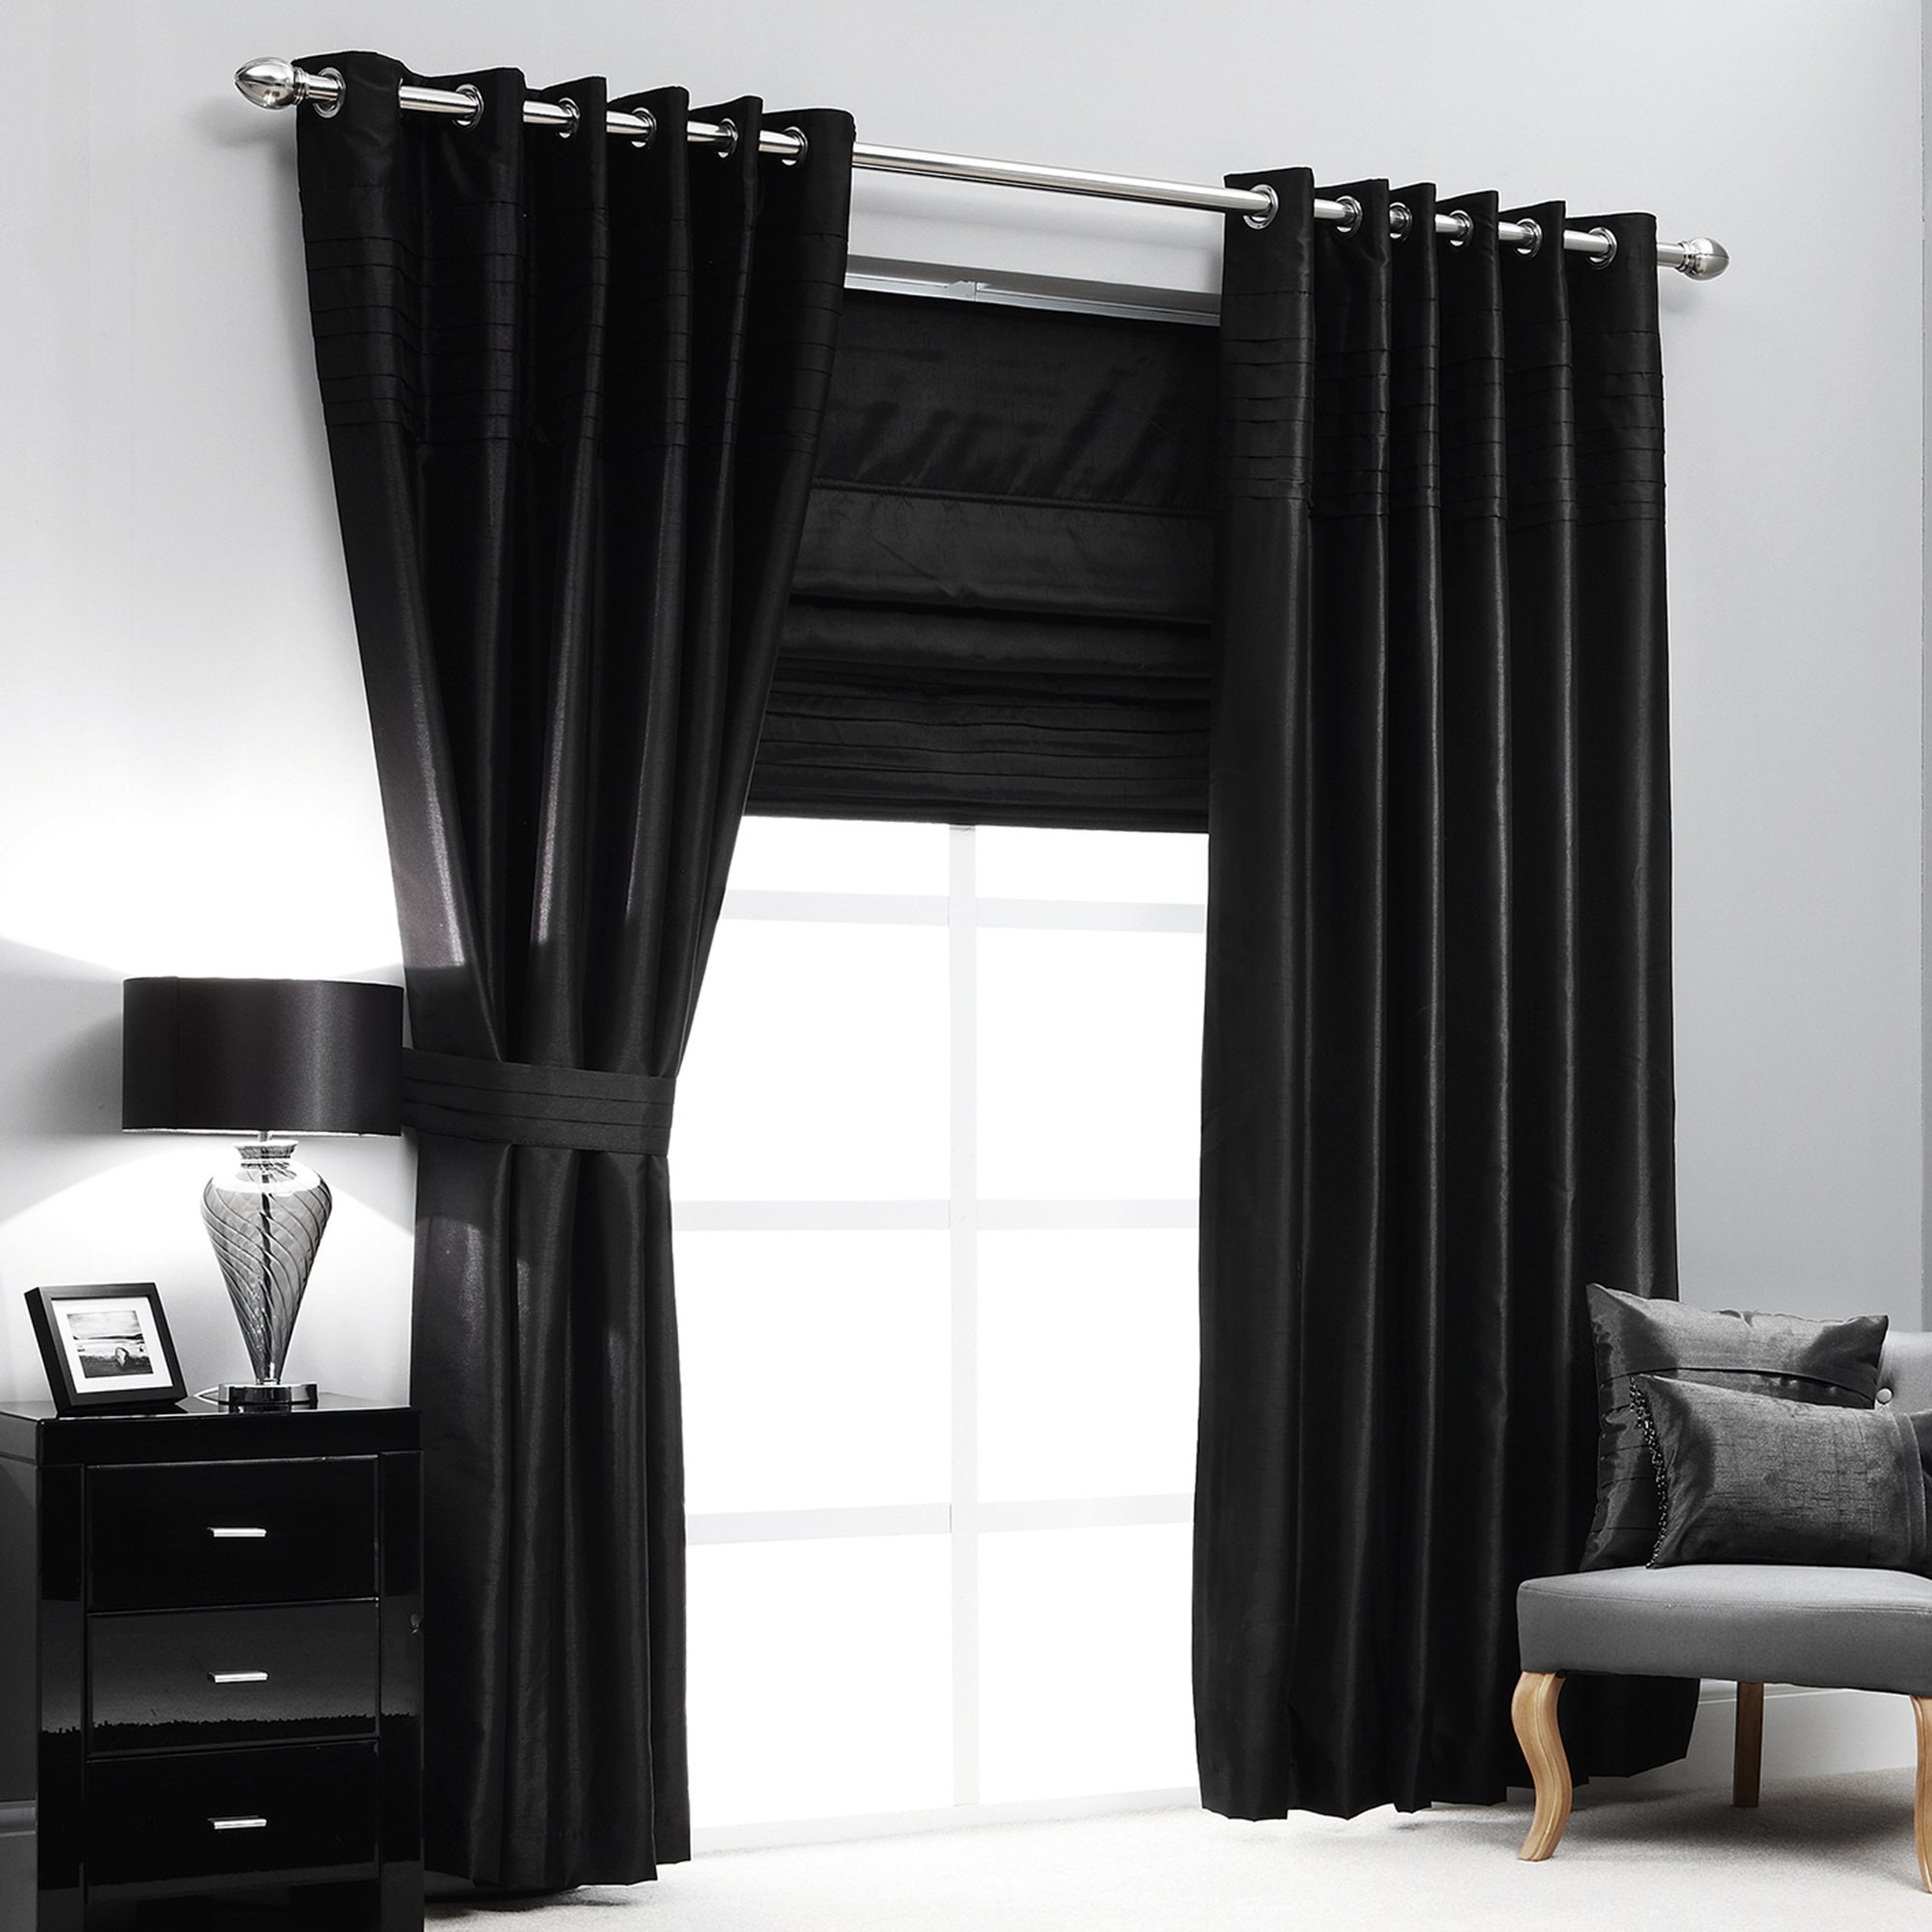 Hotel Black Pintuck Lined Eyelet Curtains